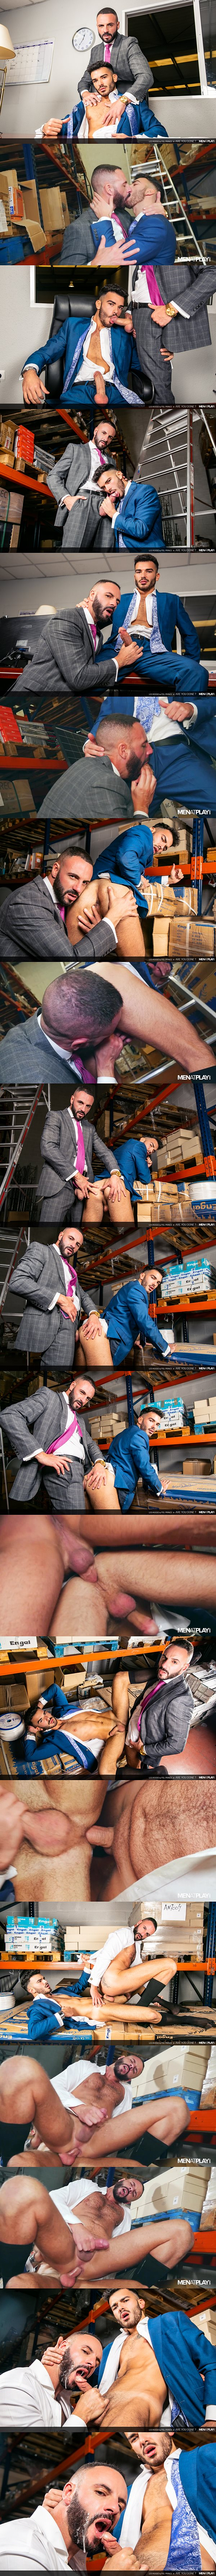 Macho hunk Leo Rosso and sexy Spanish newcomer Pol Prince flip fuck before Pol fucks the cum out of Leo and gives him a facial in both guys' bottoming debut at Menatplay 01